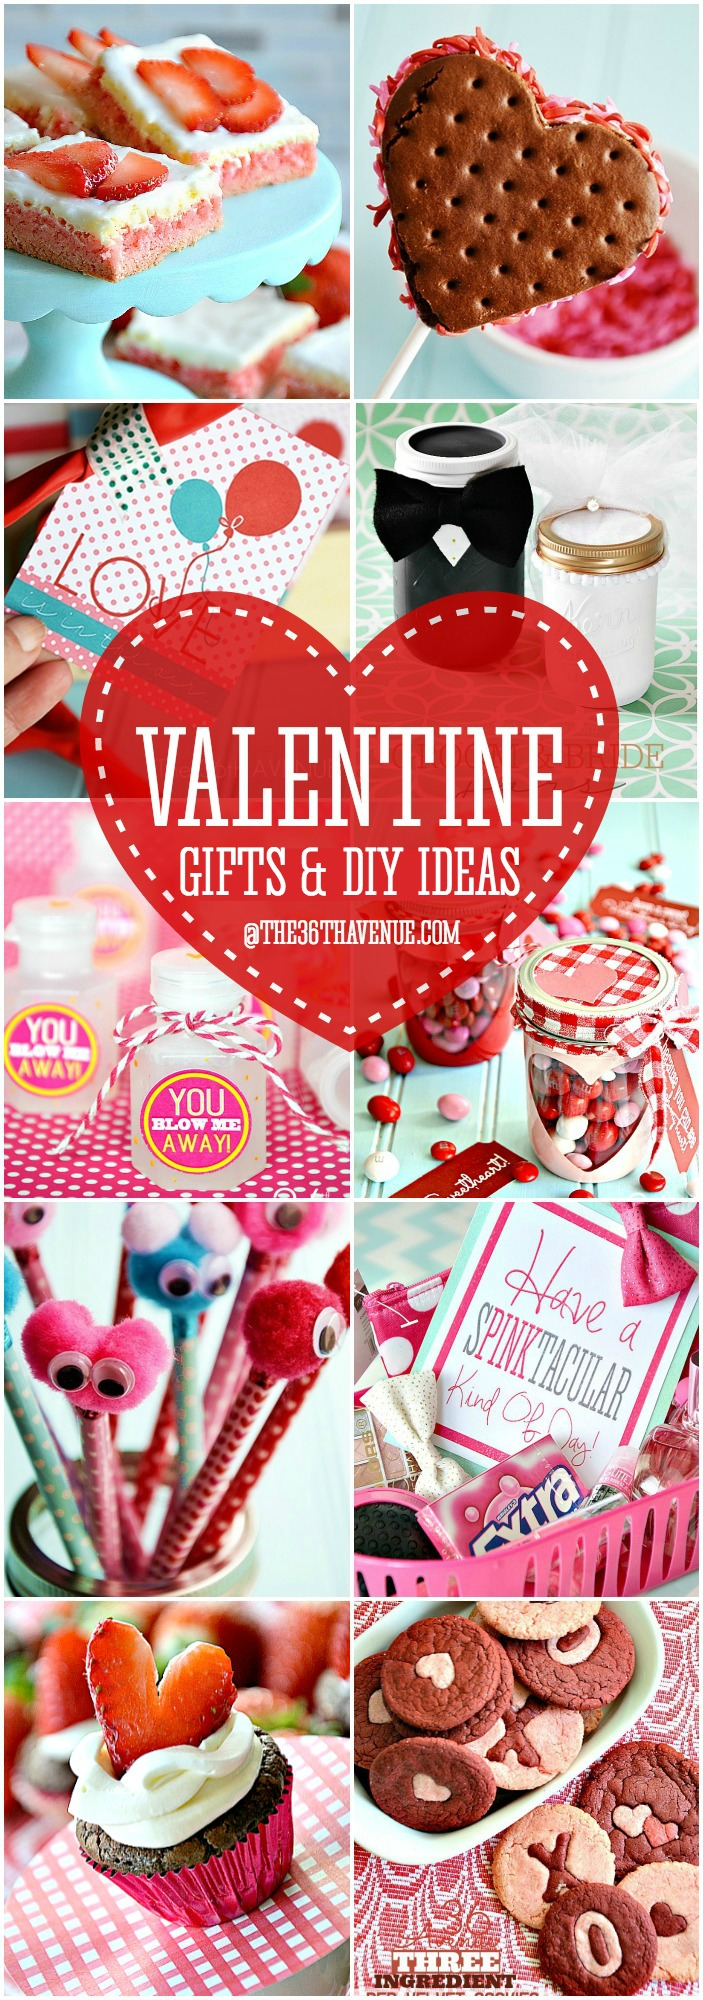 Valentine Gifts and DIY Ideas at the36thavenue.com